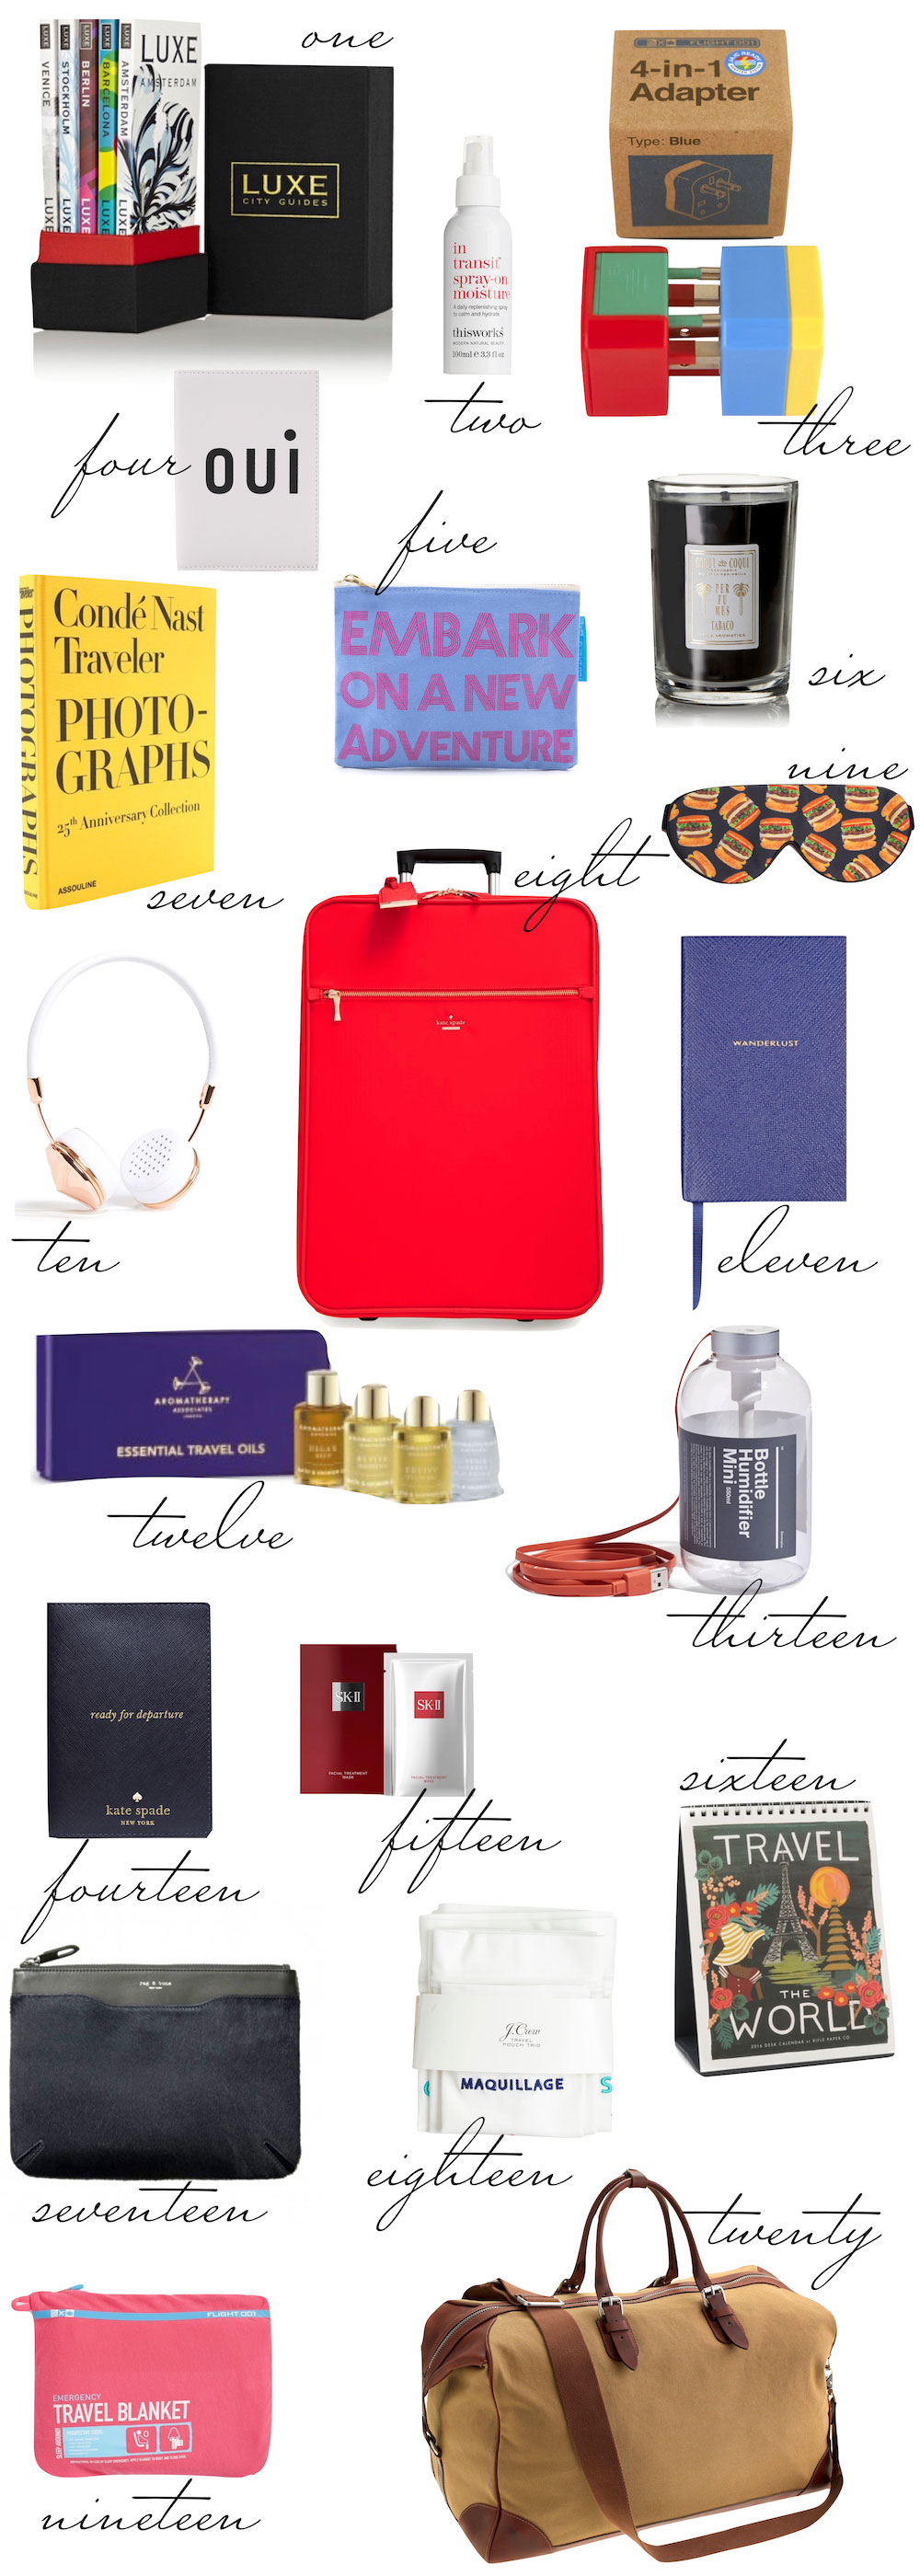 the-stripe-gift-guide-frequent-traveler